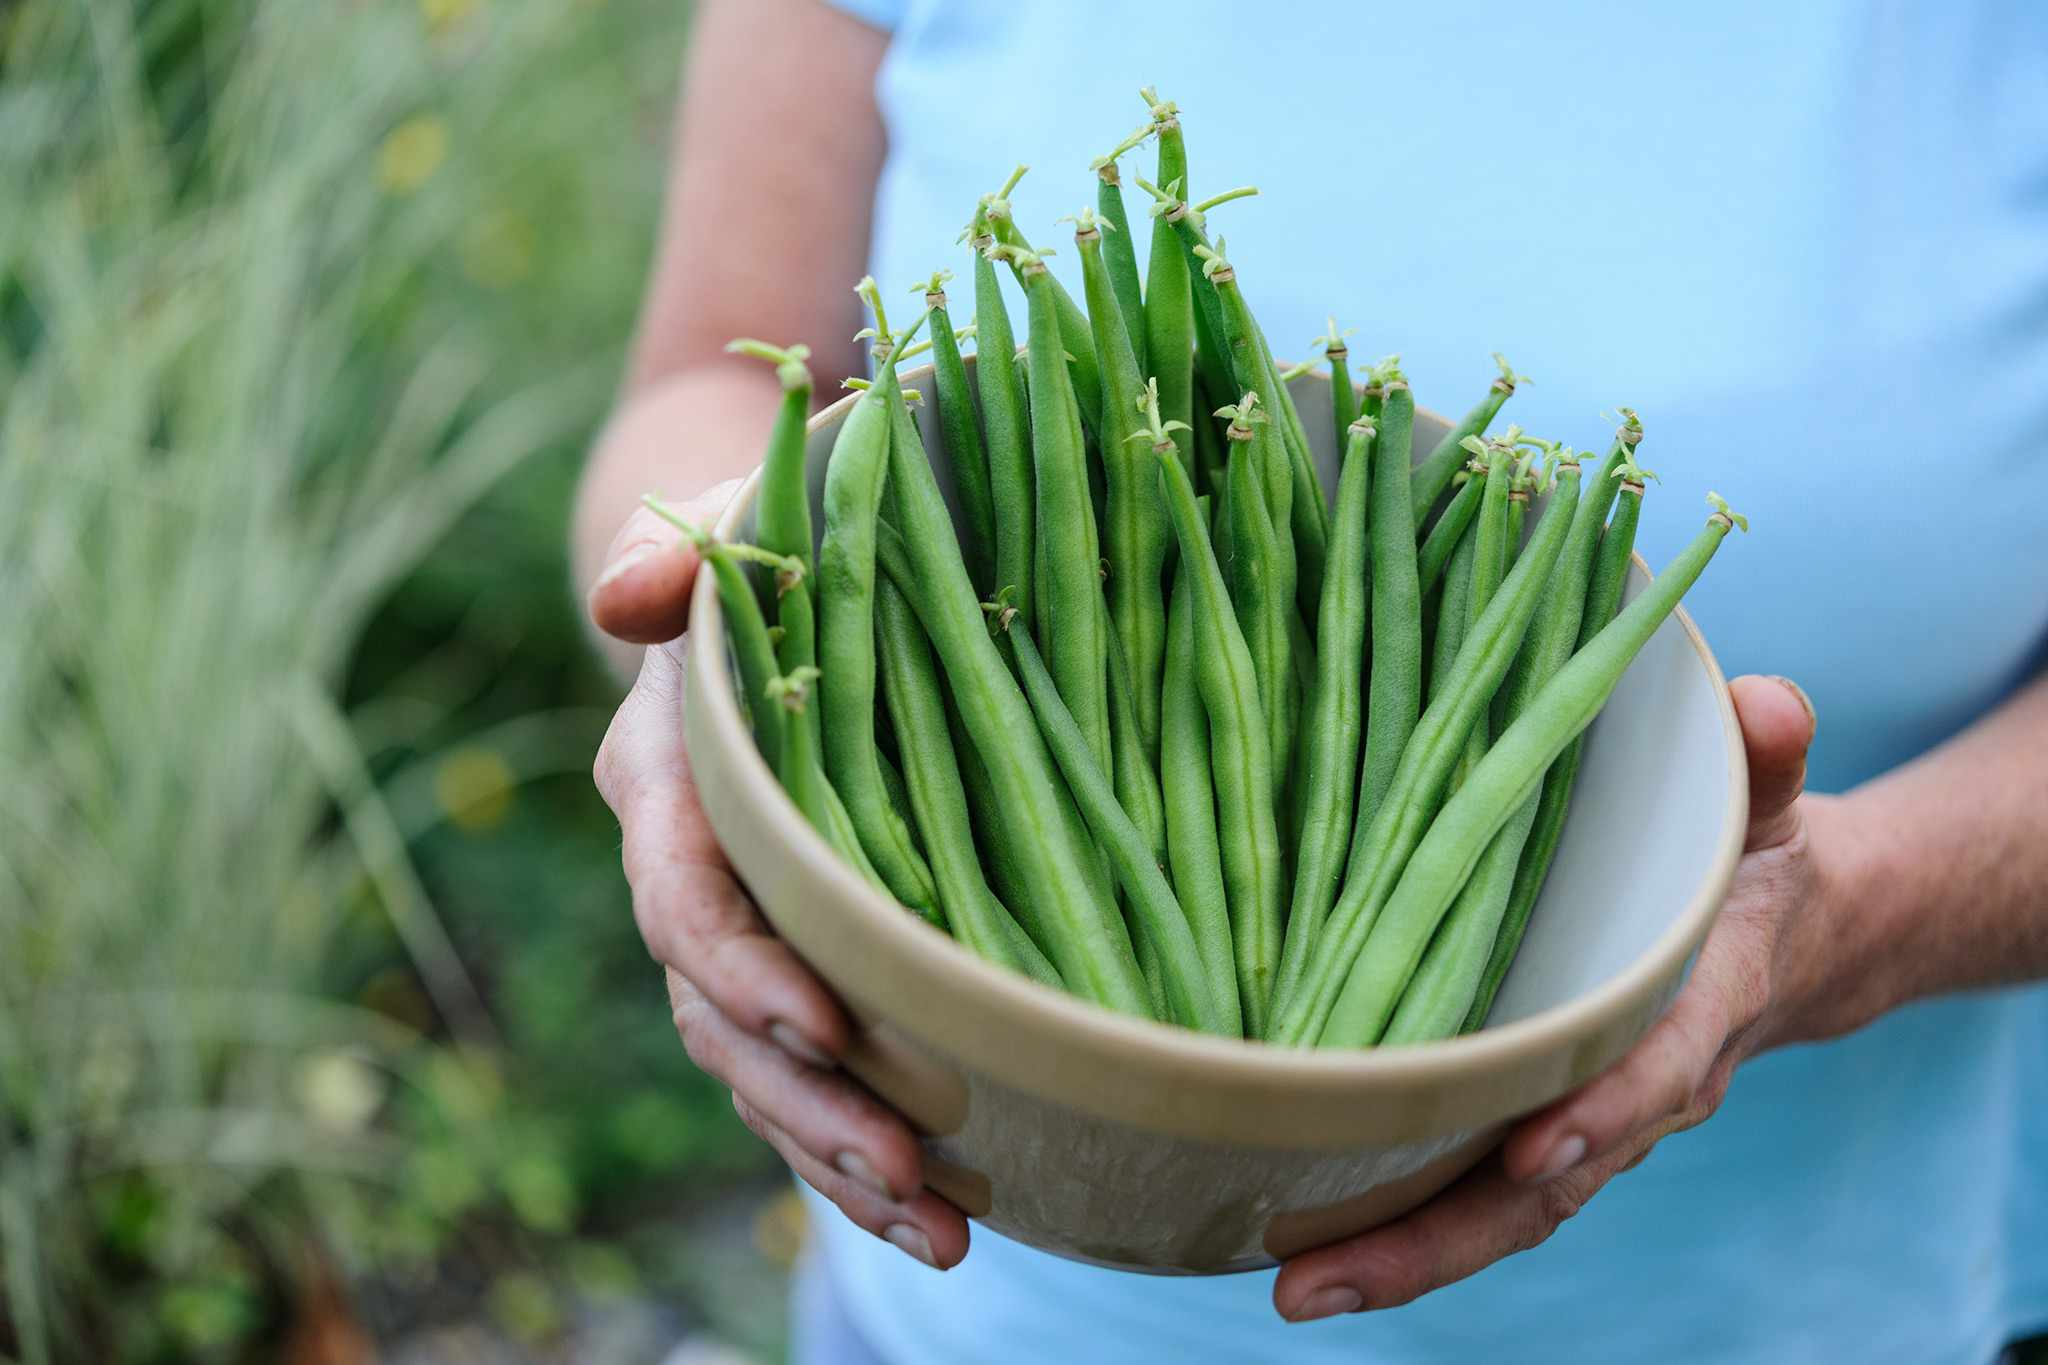 A bowlful of freshly picked French beans